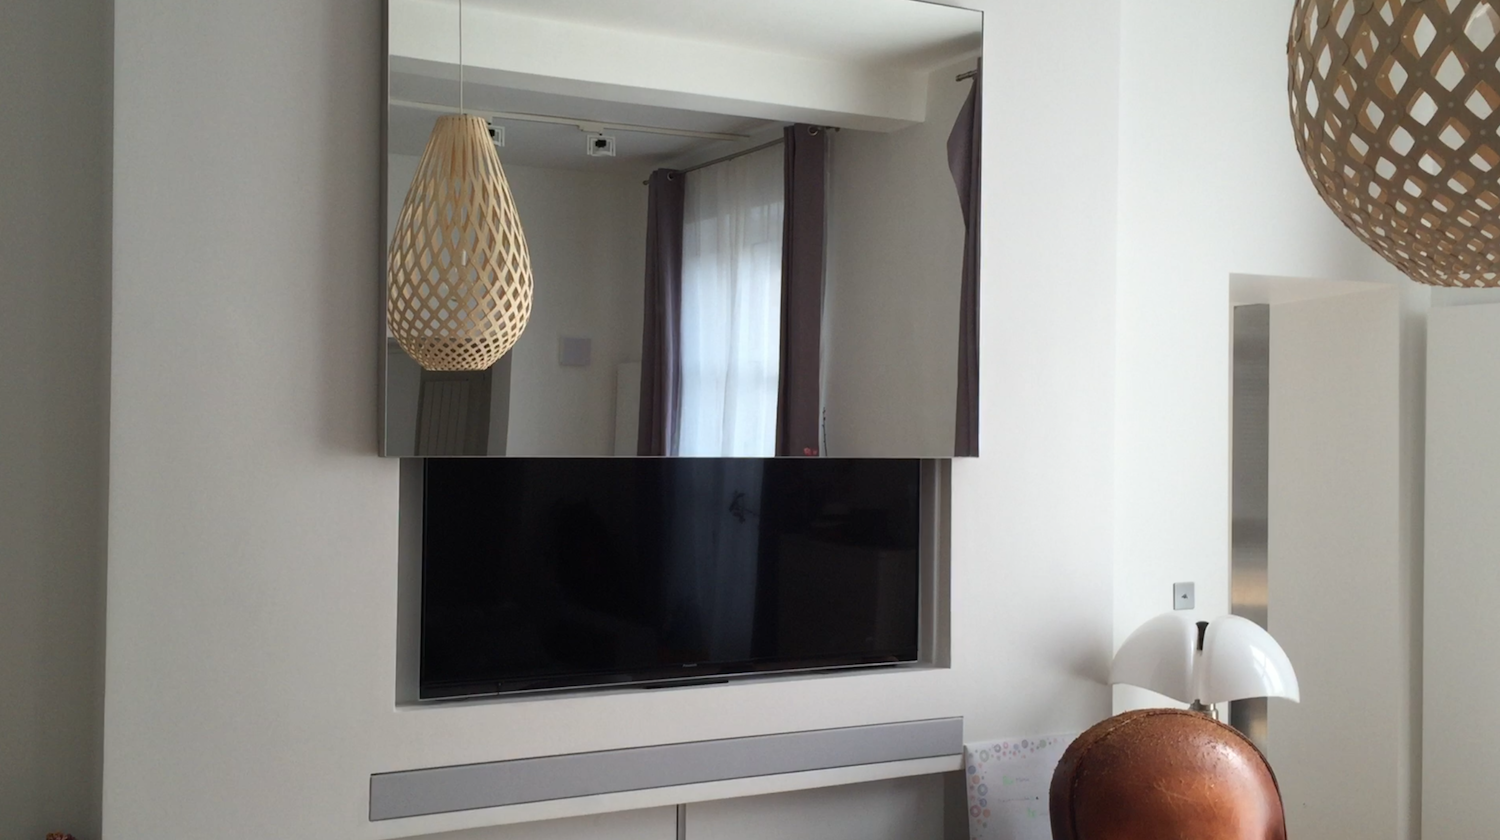 Tvs hidden tv and decor on pinterest - Comment cacher fils derriere meuble tv ...